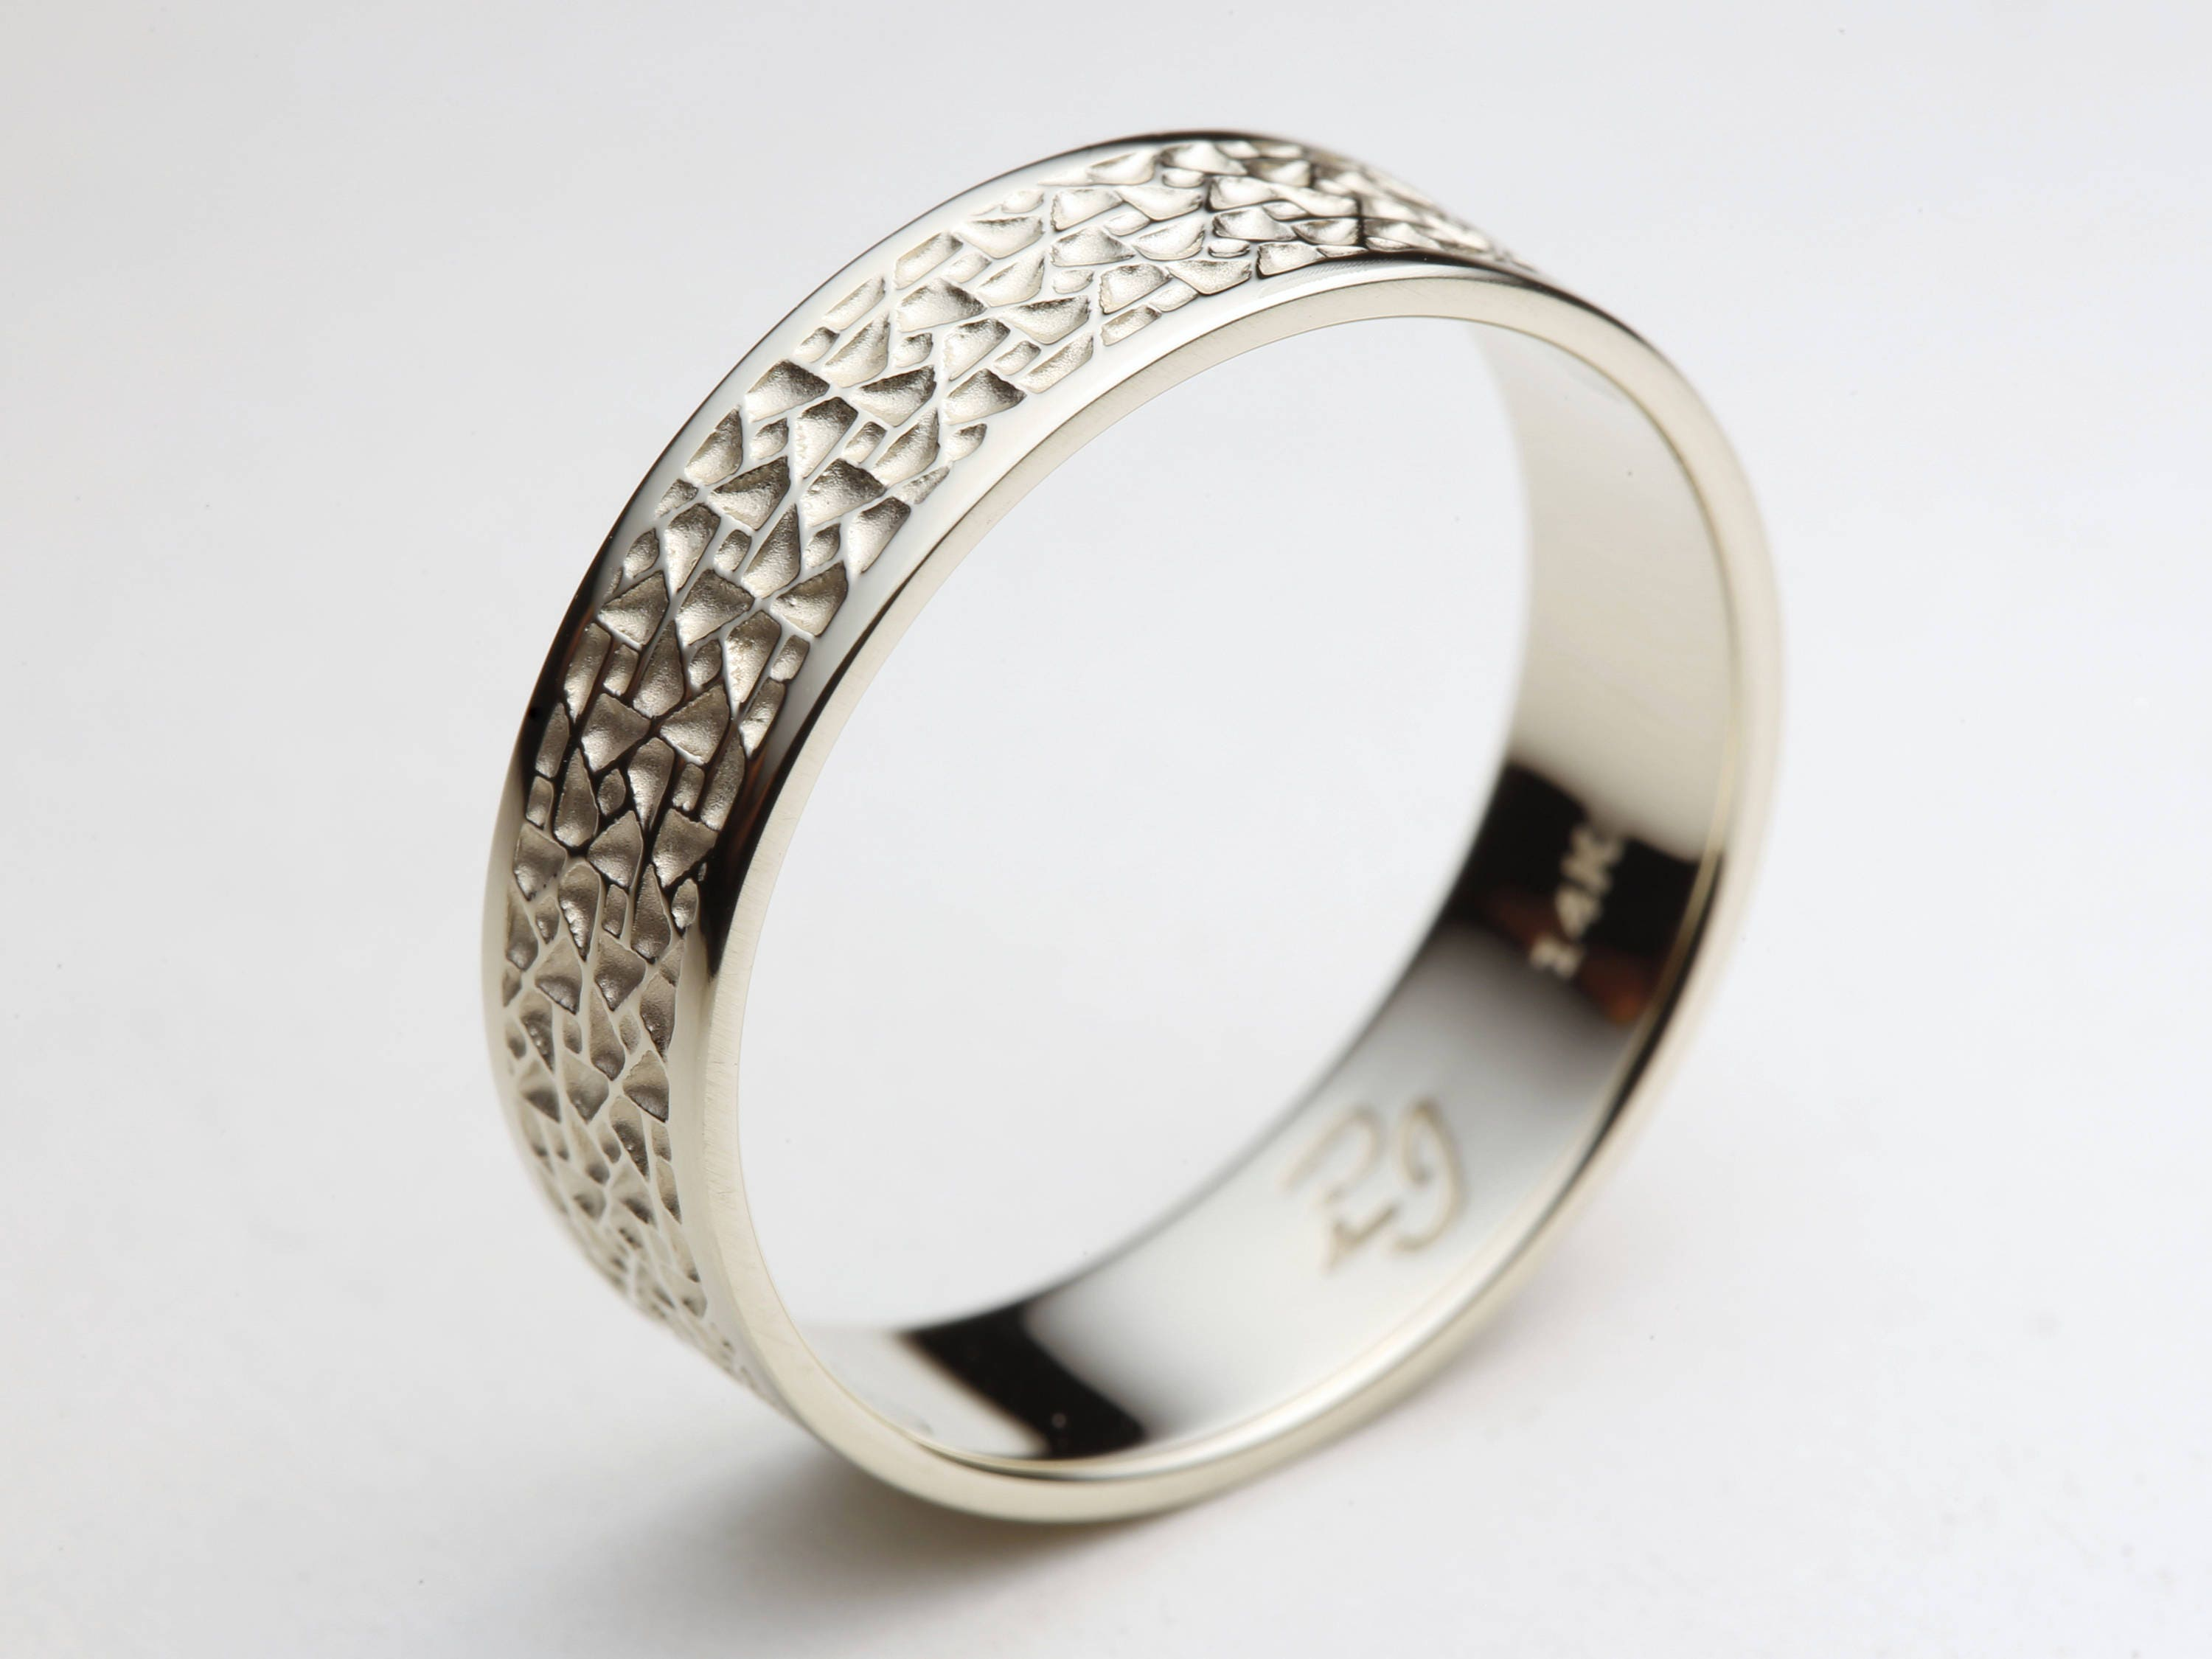 stone patterned b shop aurum diamond jewellery products index in ten wedding norwich bands ring classic rings